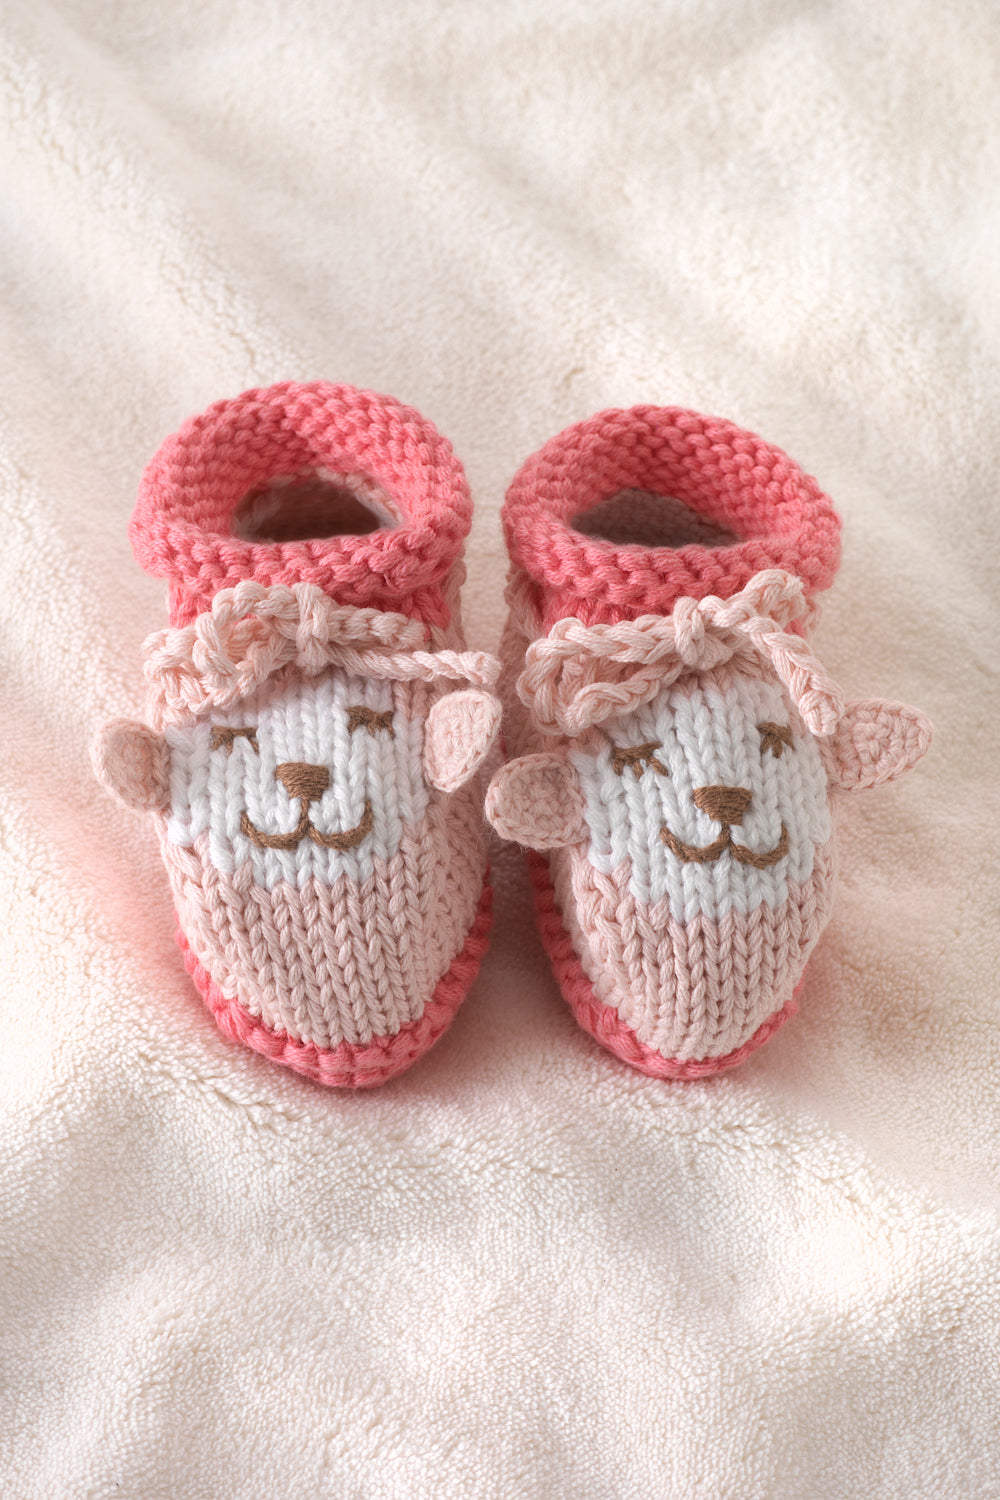 joobles-fair-trade-organic-baby-booties-cutie-the-lamb